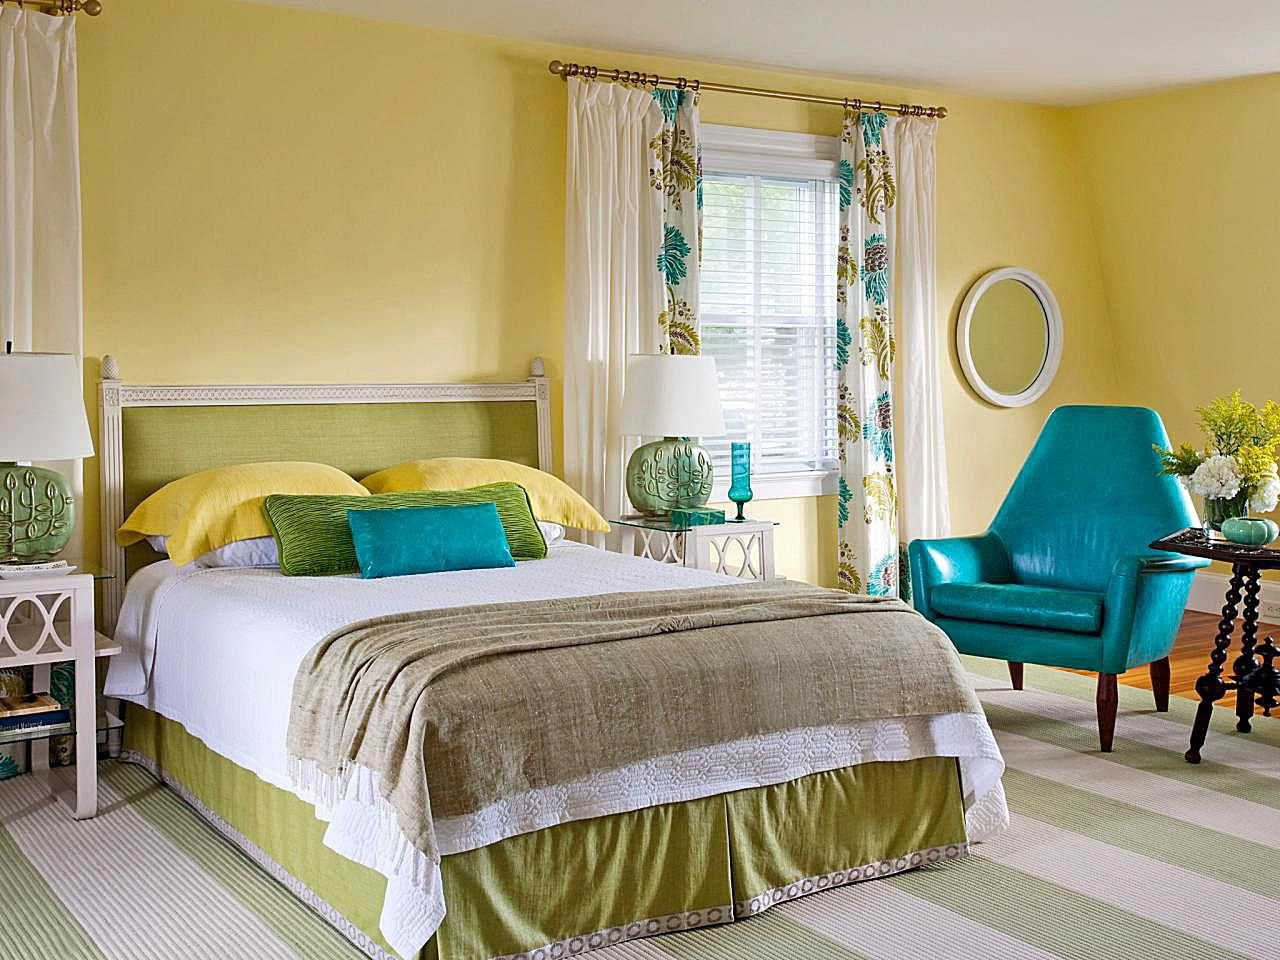 Navy Blue and Yellow Bedroom Lovely How to Decorate A Bedroom with Yellow